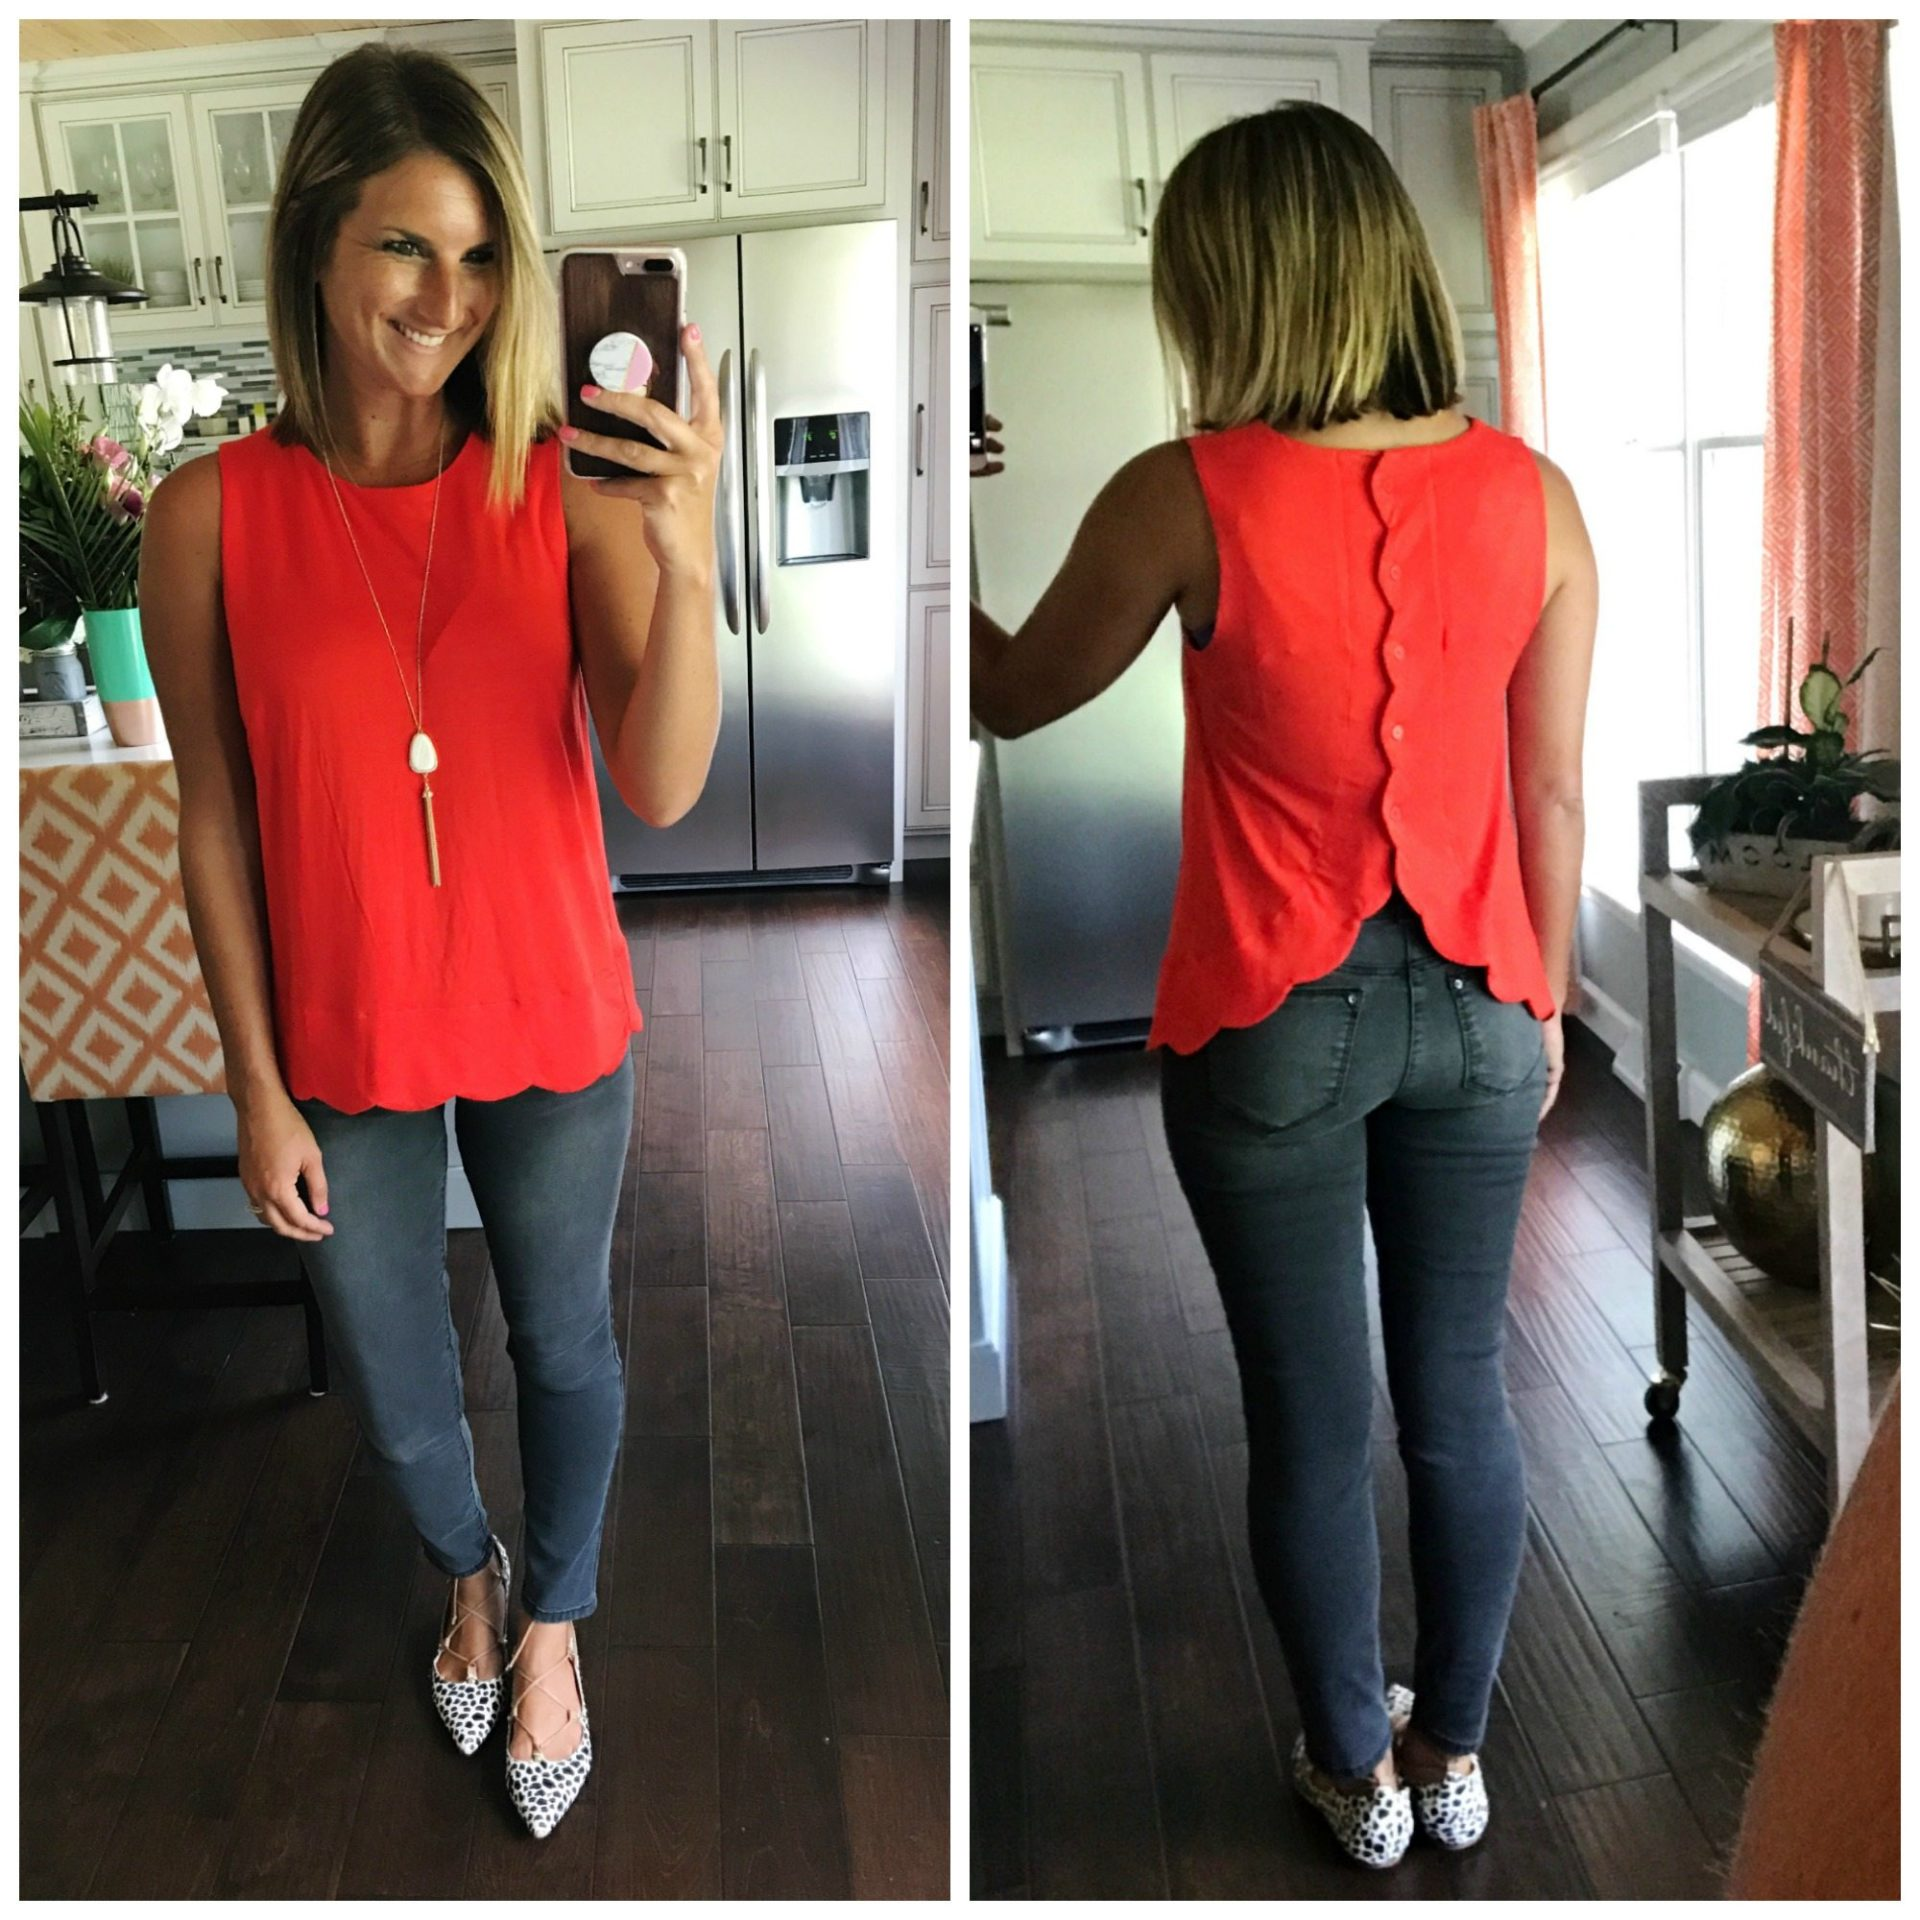 fdc9b1b5 [ordered in red fiery in XS, TRUE TO SIZE] The back is even cuter! It's  hard to find great tanks for summer and with this one, I think I may just  have.